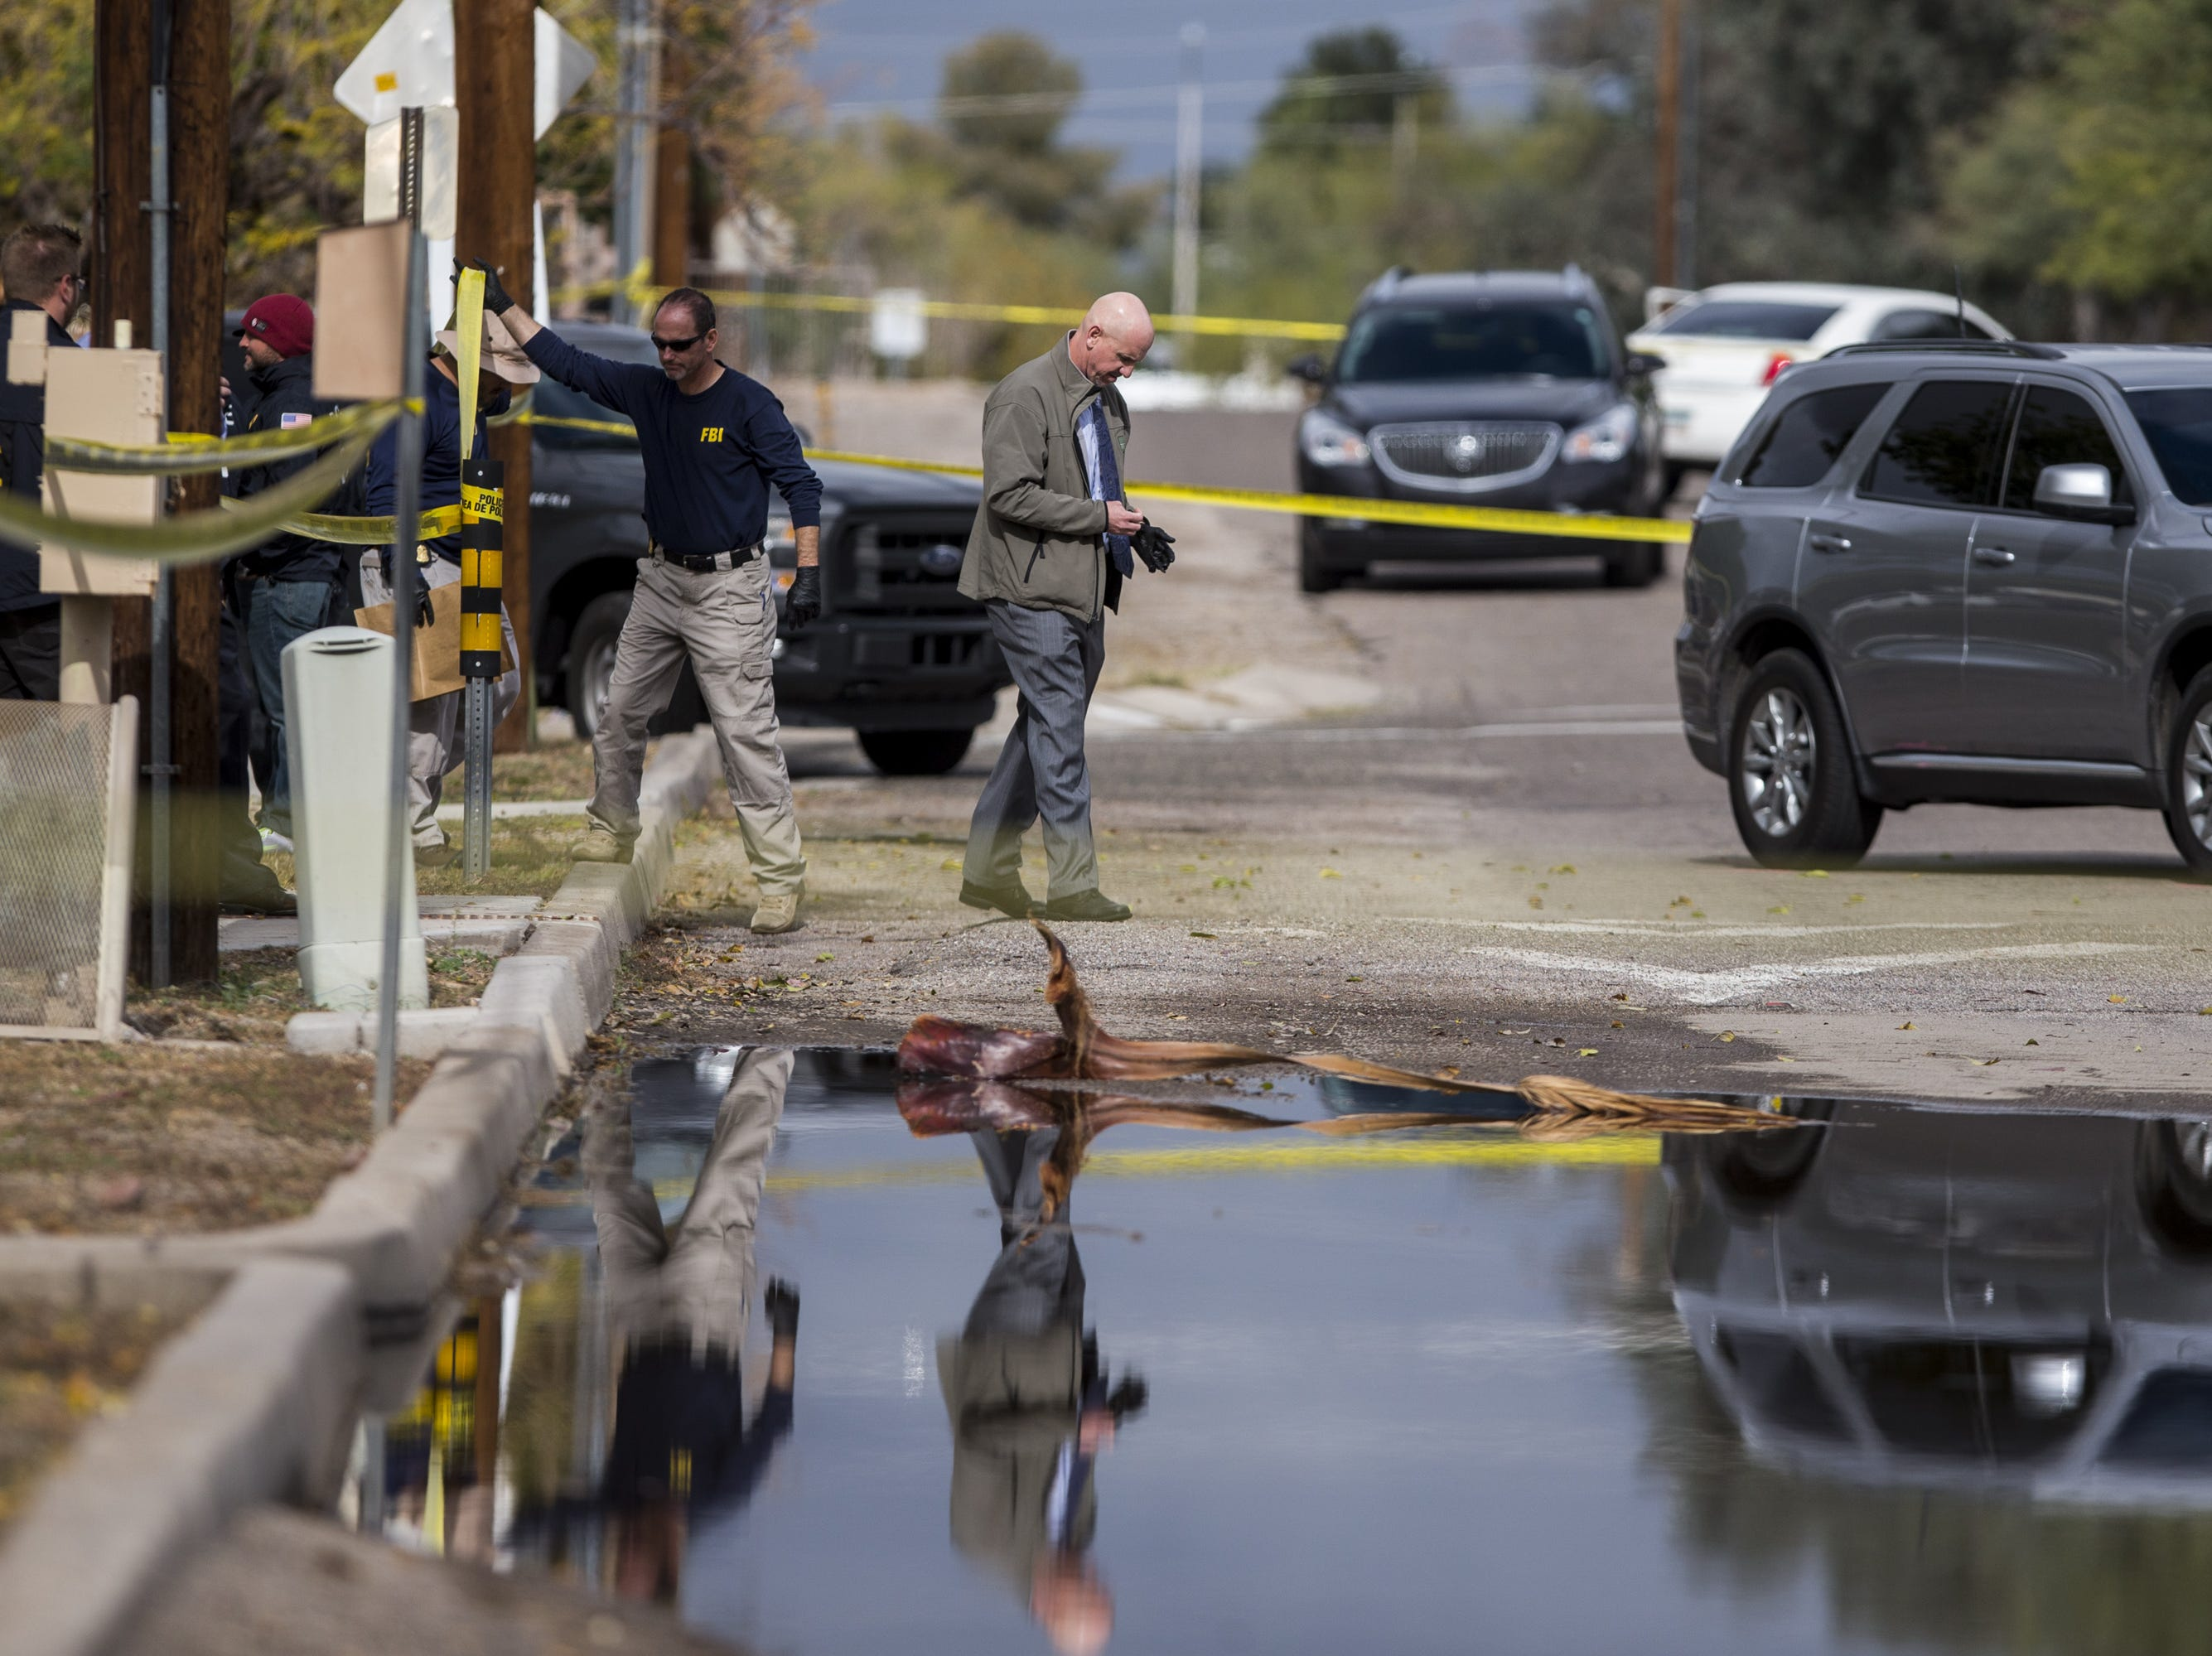 Law enforcement investigates the scene of a fatal shooting of a deputy U.S. marshal on Friday, Nov. 30, 2018, in Tucson, Ariz. Law enforcement said Deputy U.S. Marshal Chase White was fatally shot by a suspect, Ryan Schlesinger, 26, while he was serving a fugitive warrant at a house on Thursday.